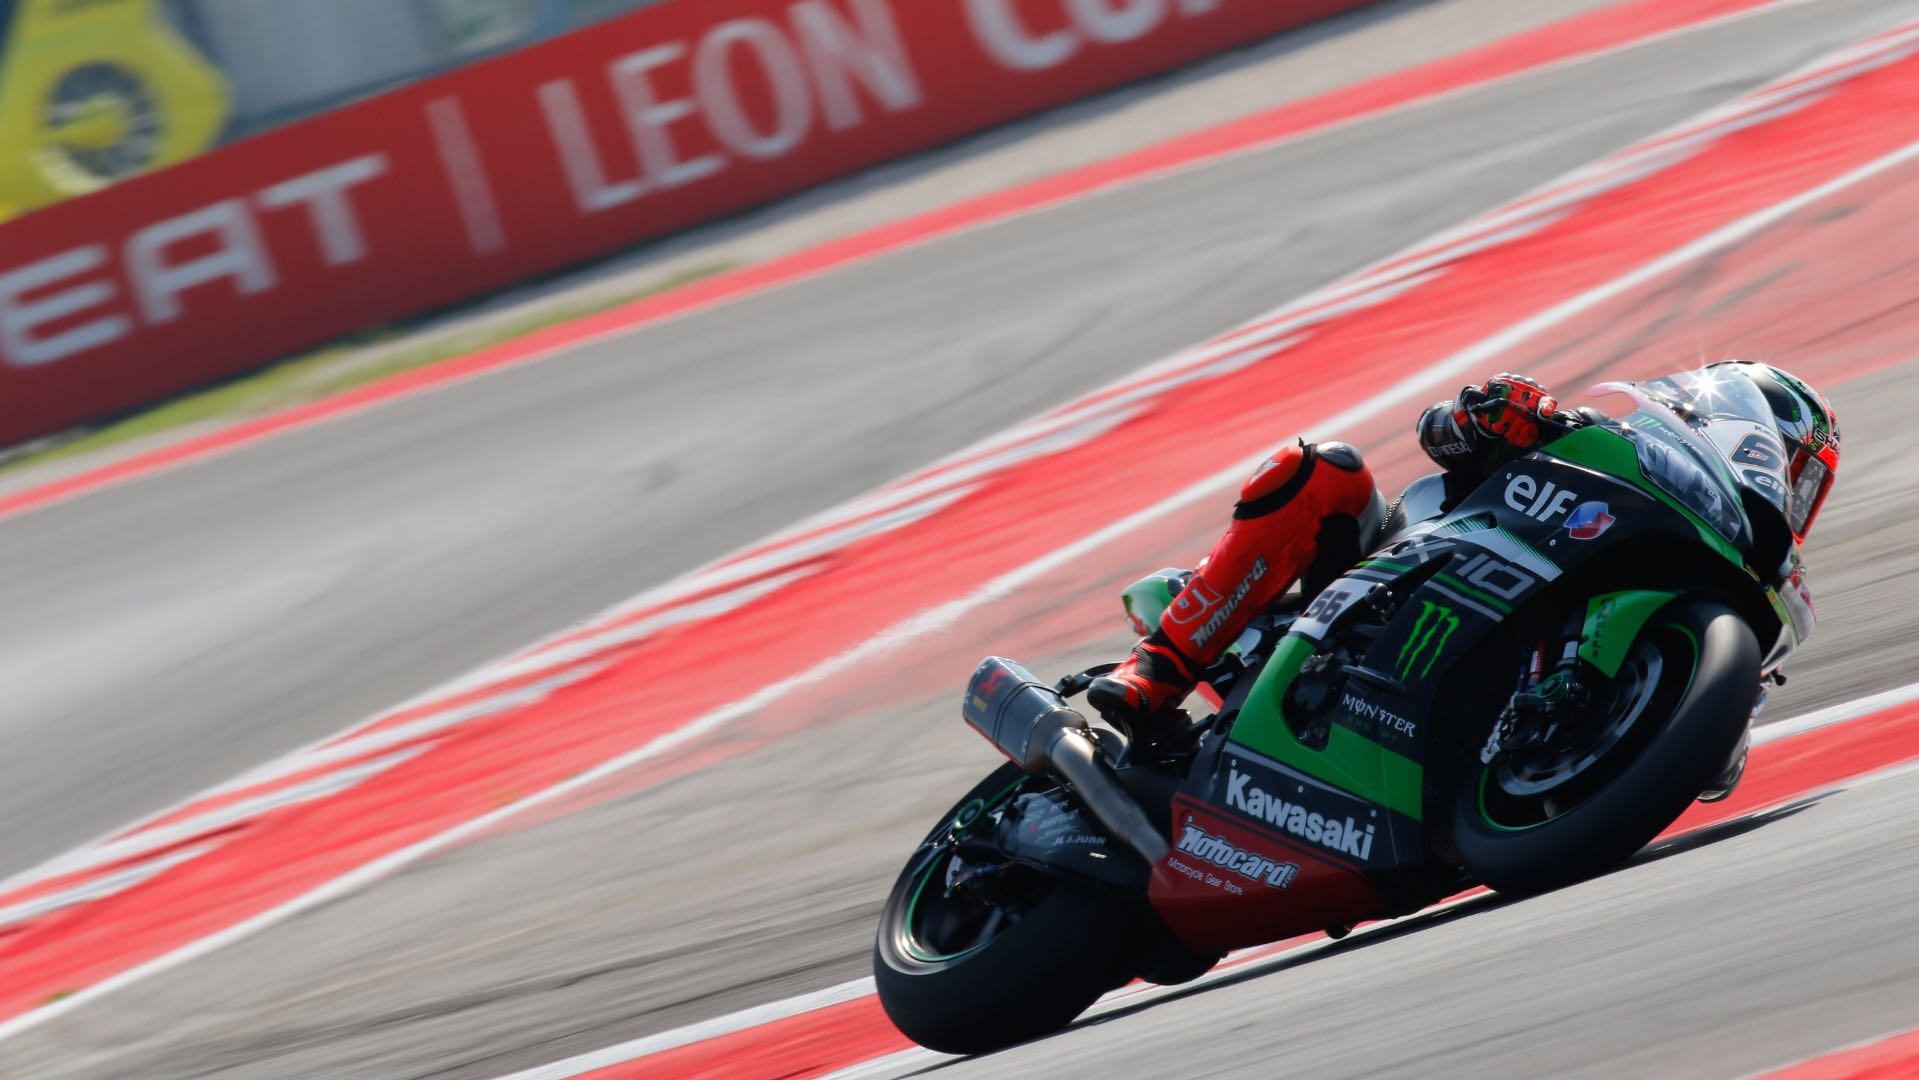 2017 Misano World Superbike Results: Kawasaki's Tom Sykes